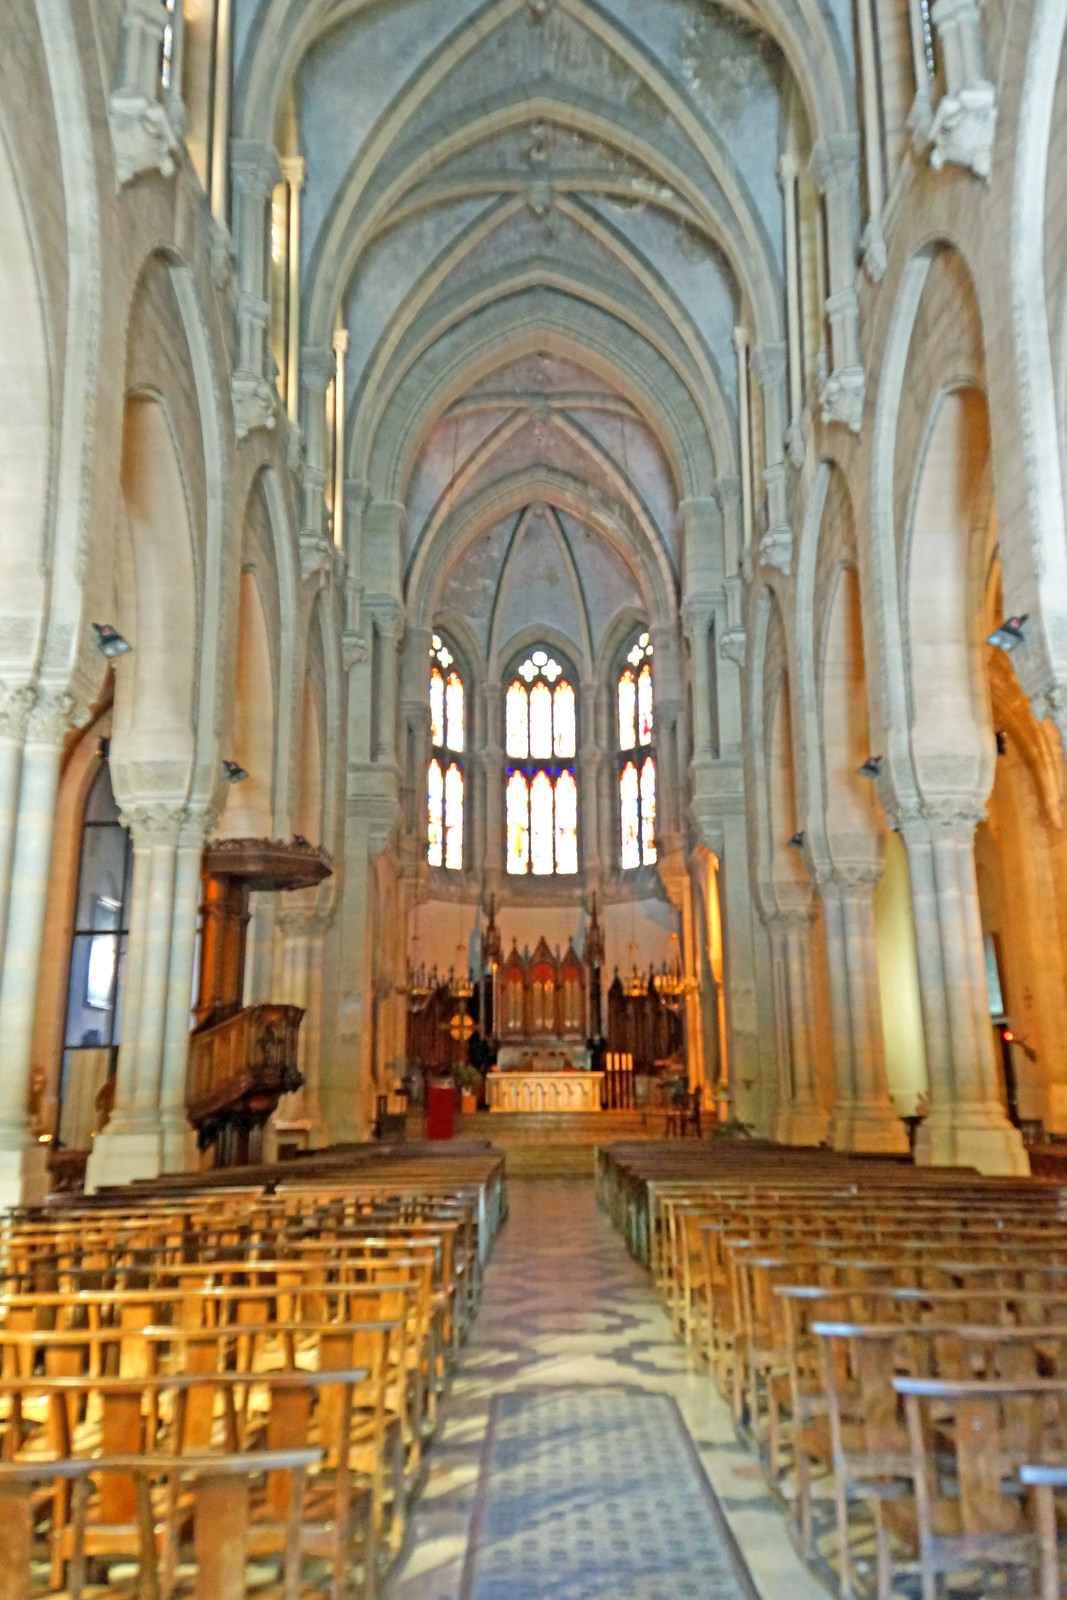 France-002398 - Nave